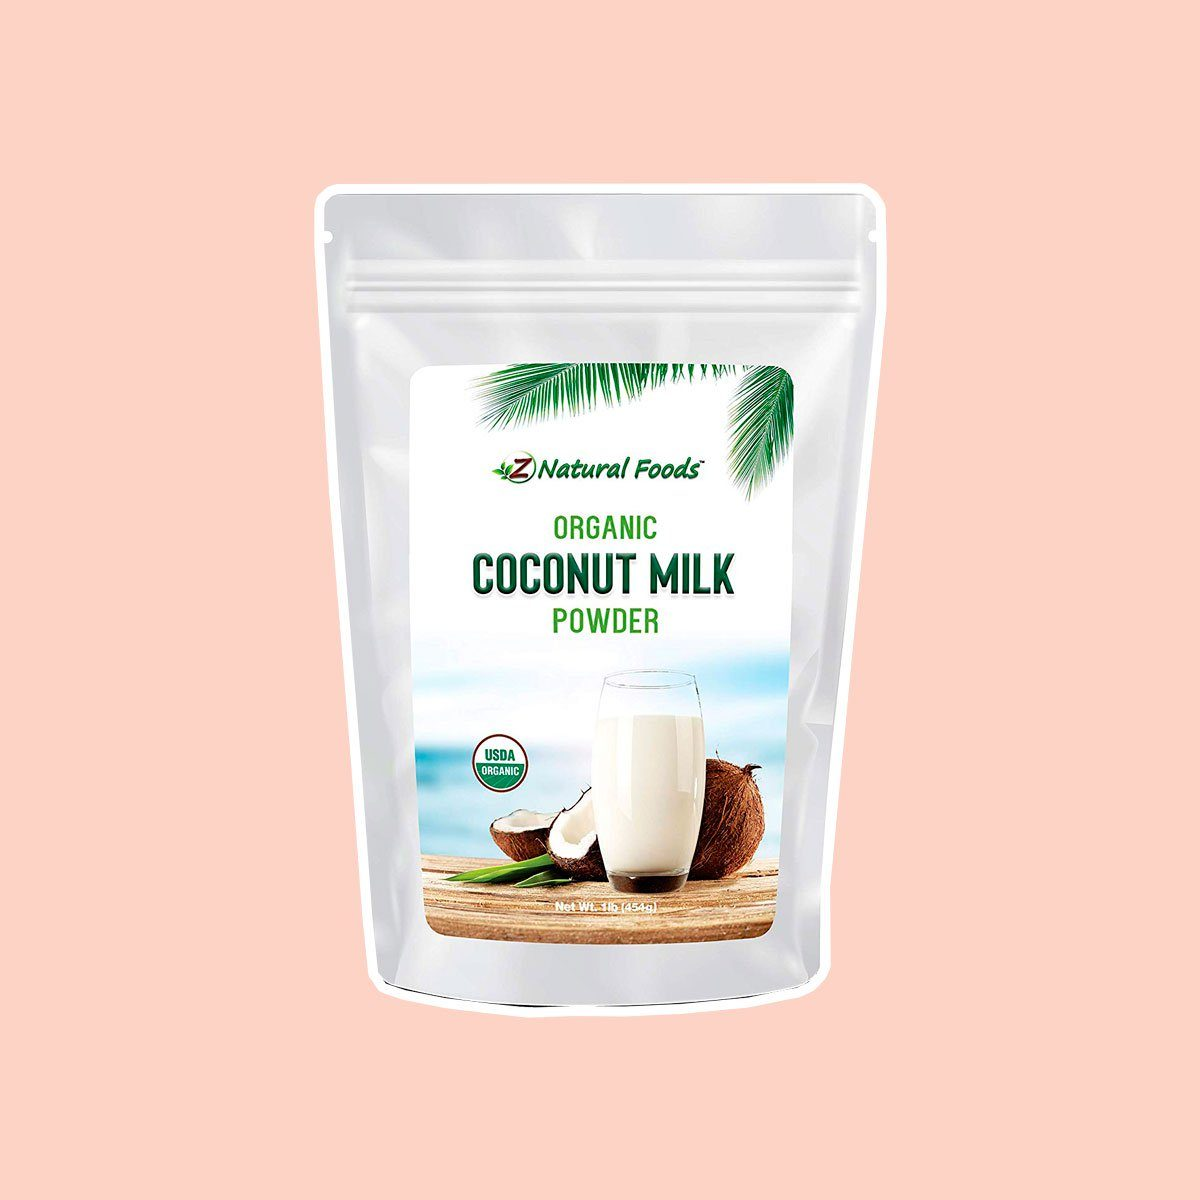 Z Natural Foods Organic Coconut Milk Powder